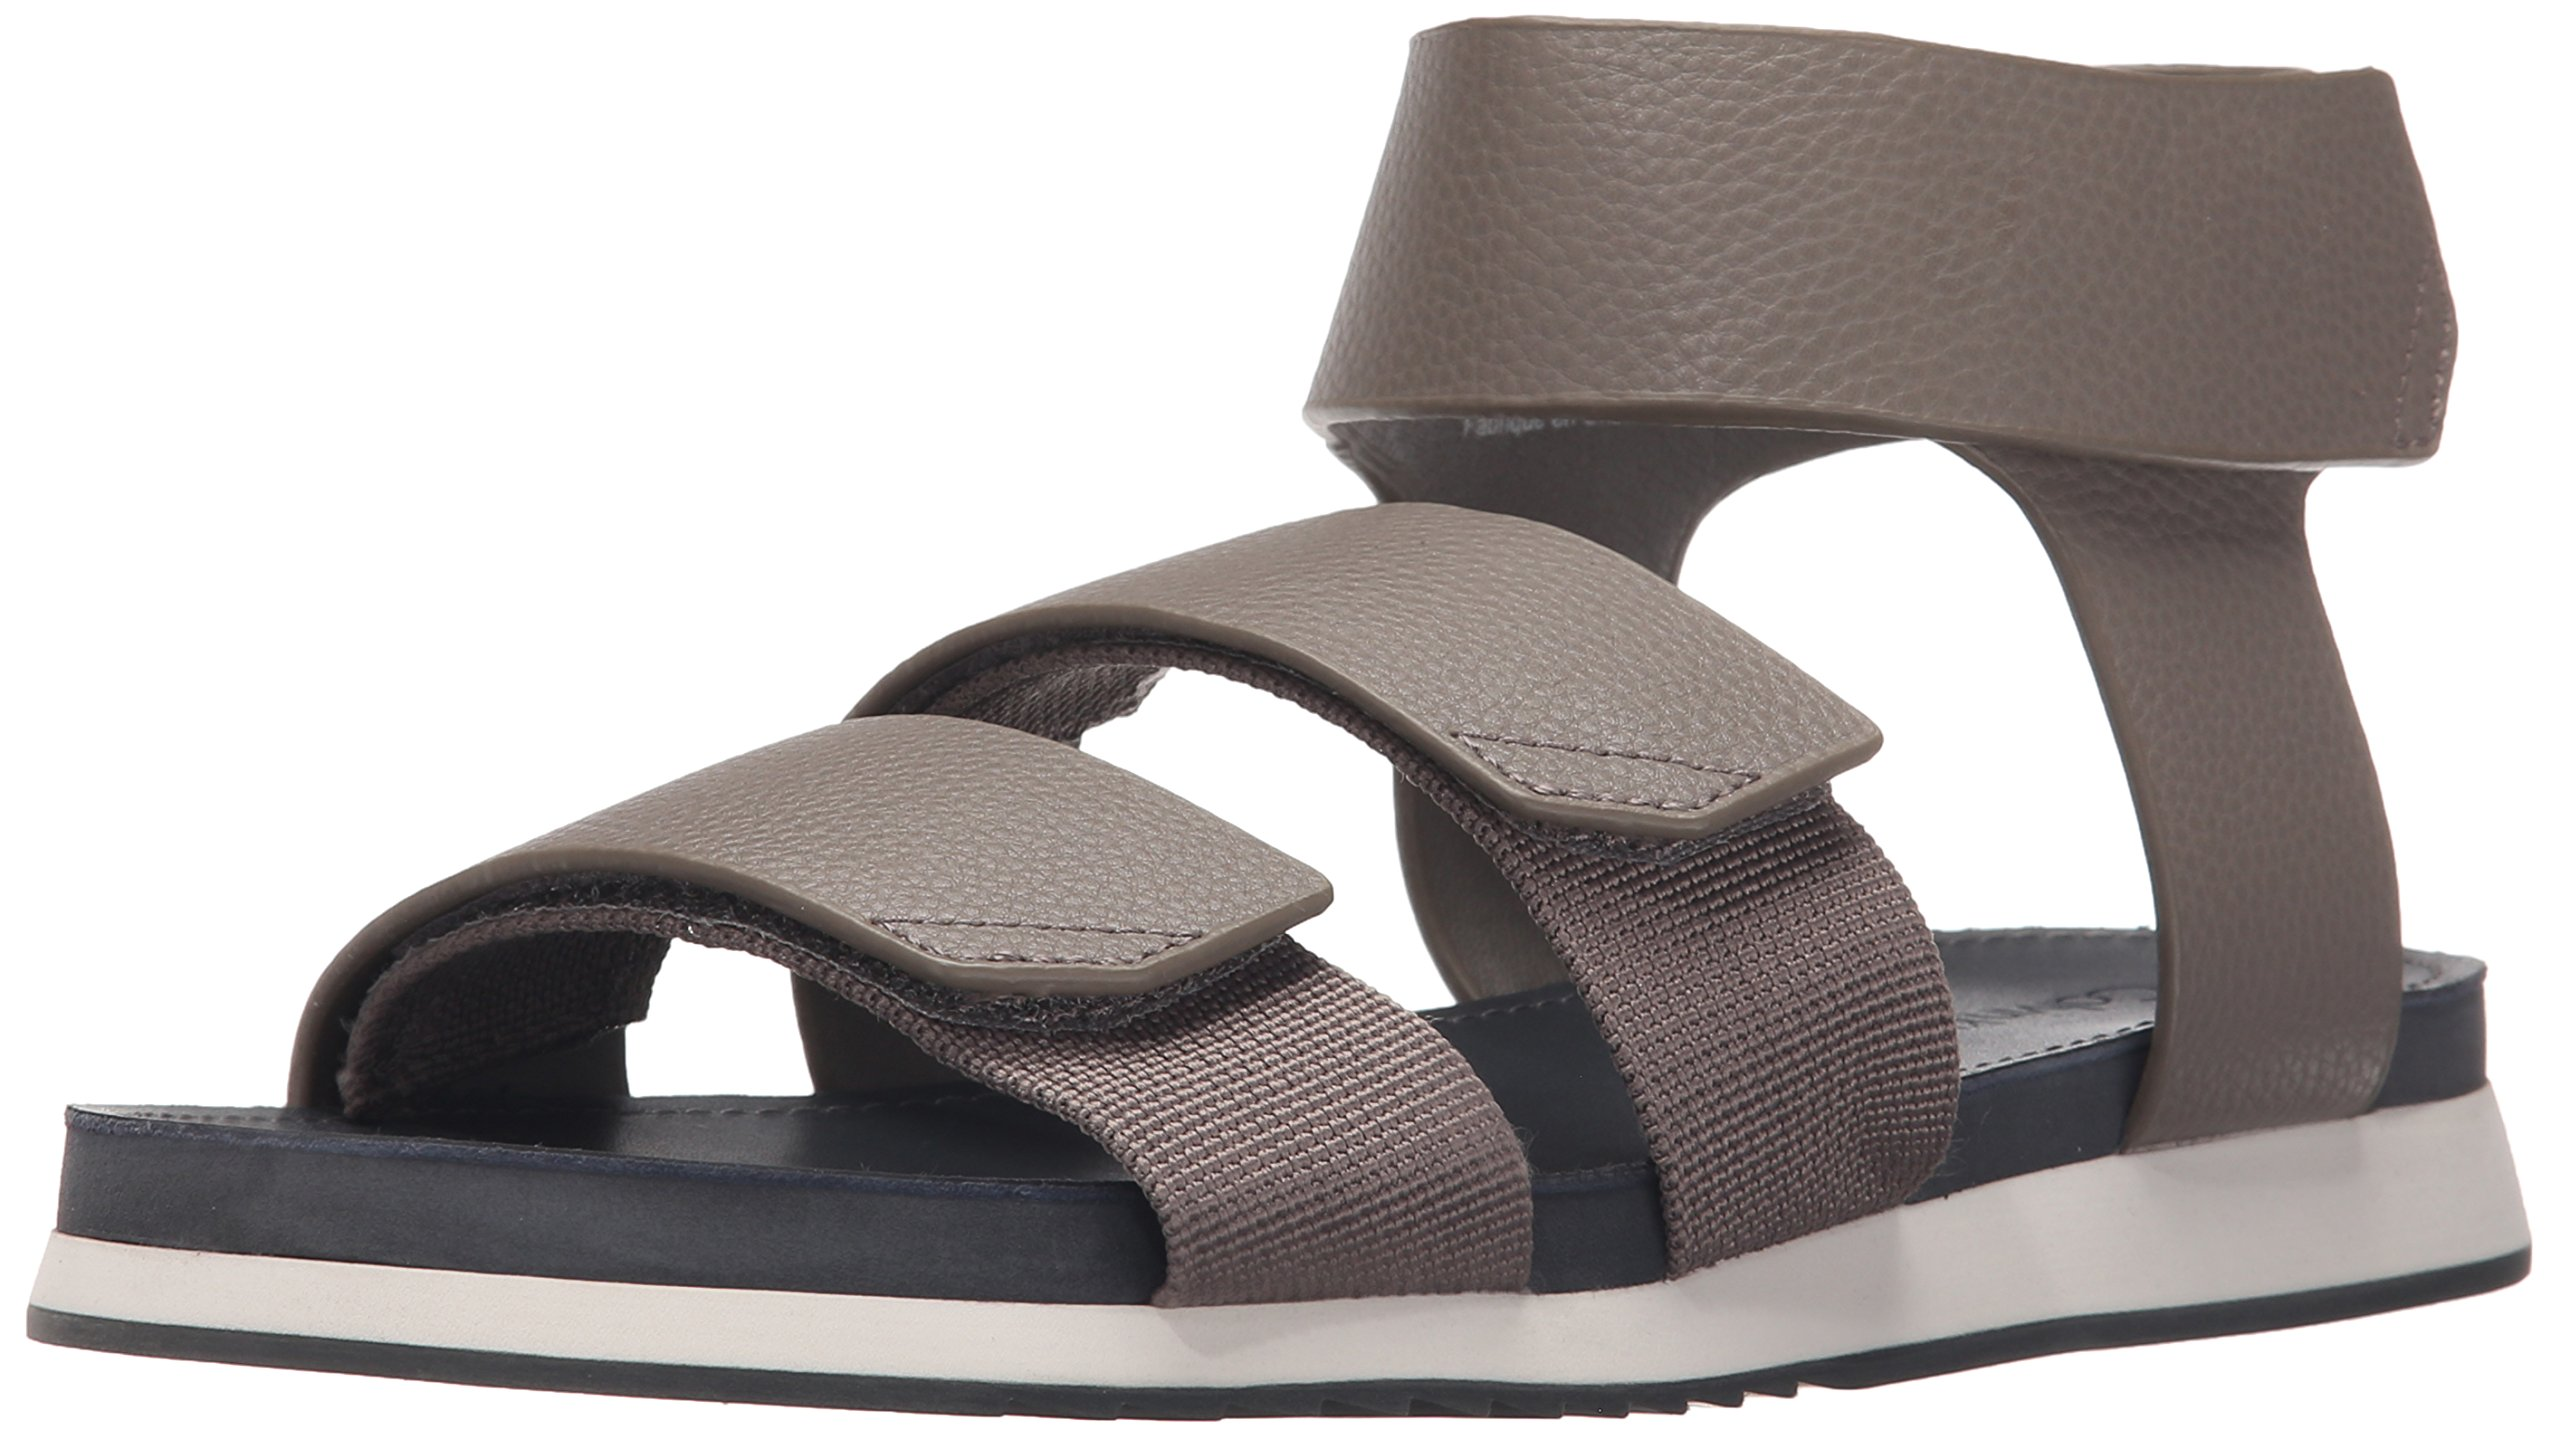 Calvin Klein Men's Colton Webbing Dress Sandal, Toffee, 9.5 M US